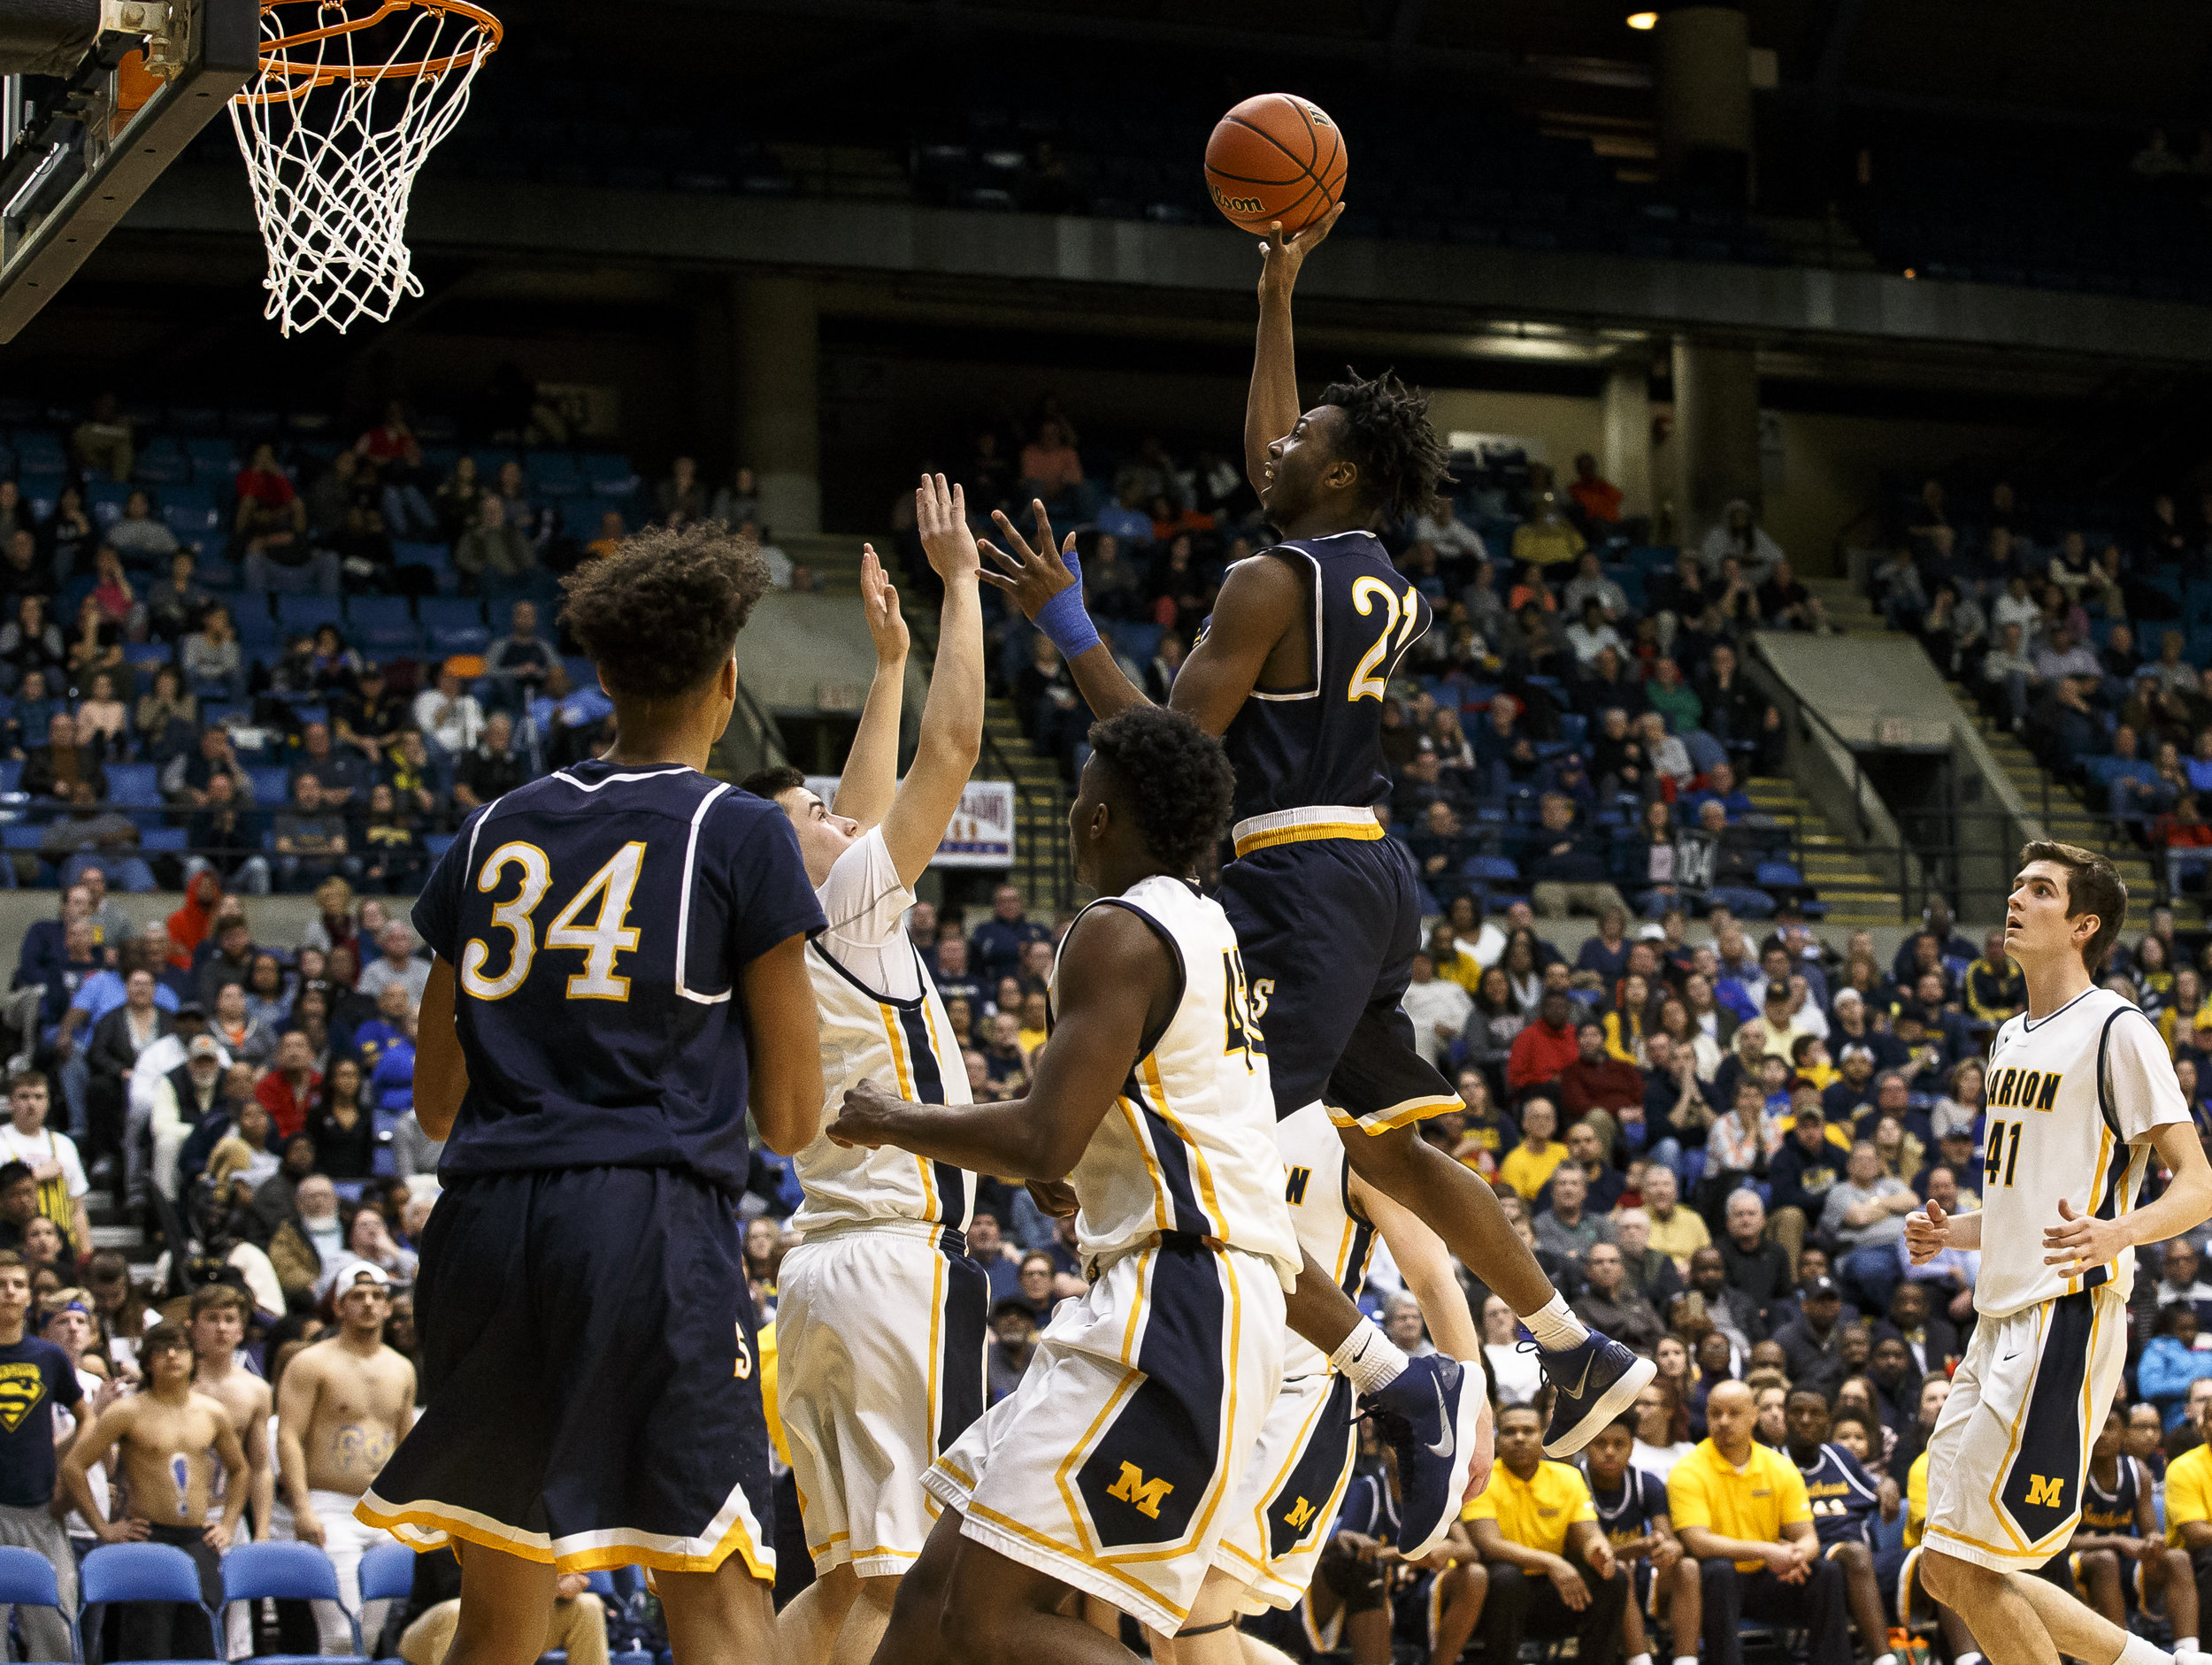 Southeast's Anthony Fairlee (21) goes up and over Marion for a basket in the second half during the Class 3A Springfield Supersectional at the Bank of Springfield Center, Tuesday, March 13, 2018, in Springfield, Ill. [Justin L. Fowler/The State Journal-Register]